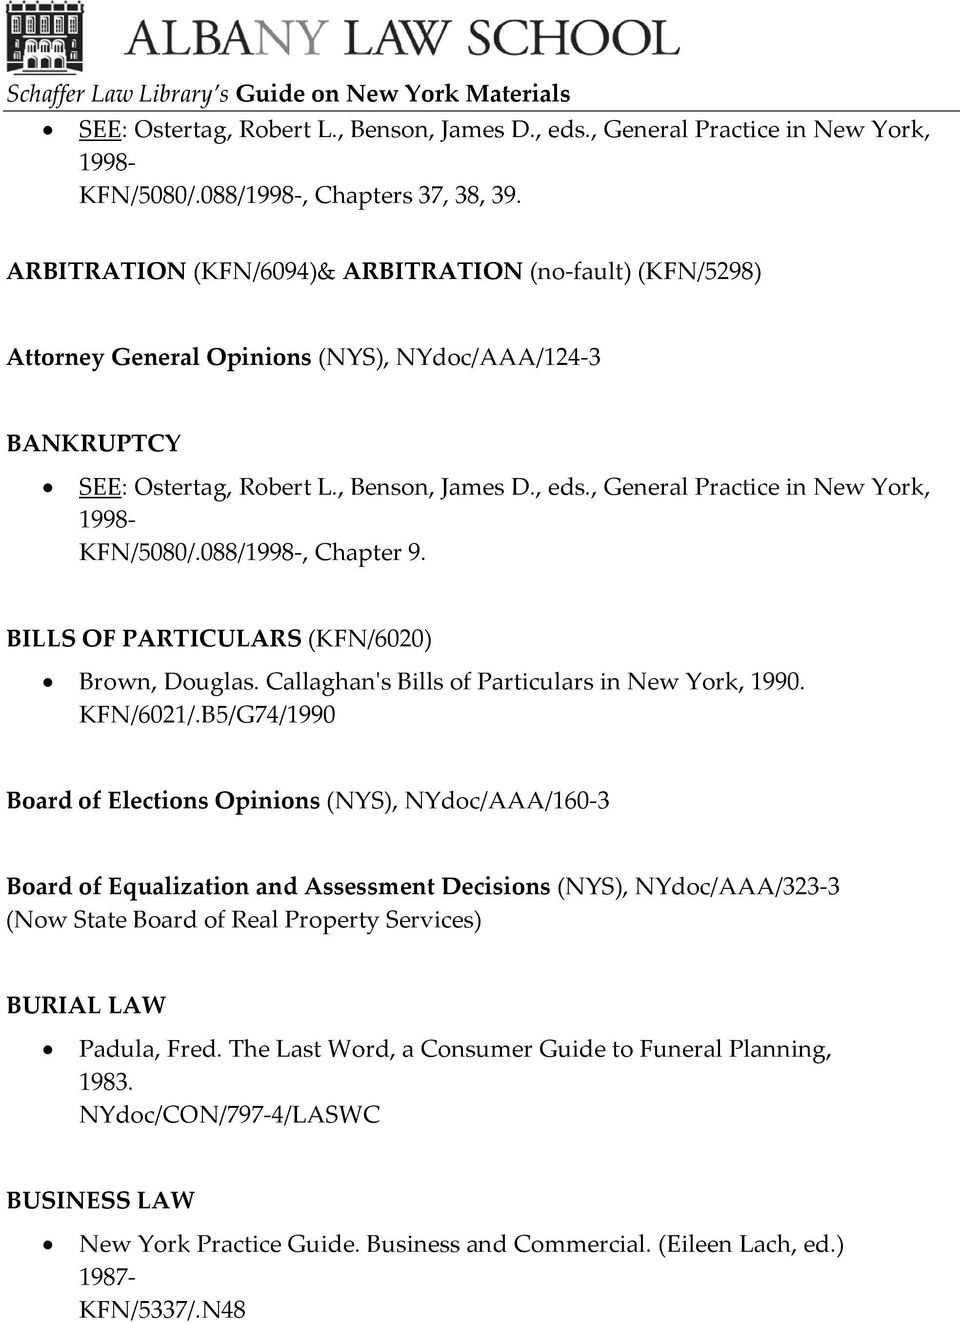 B5/G74/1990 Board of Elections Opinions (NYS), NYdoc/AAA/160-3 Board of Equalization and Assessment Decisions (NYS), NYdoc/AAA/323-3 (Now State Board of Real Property